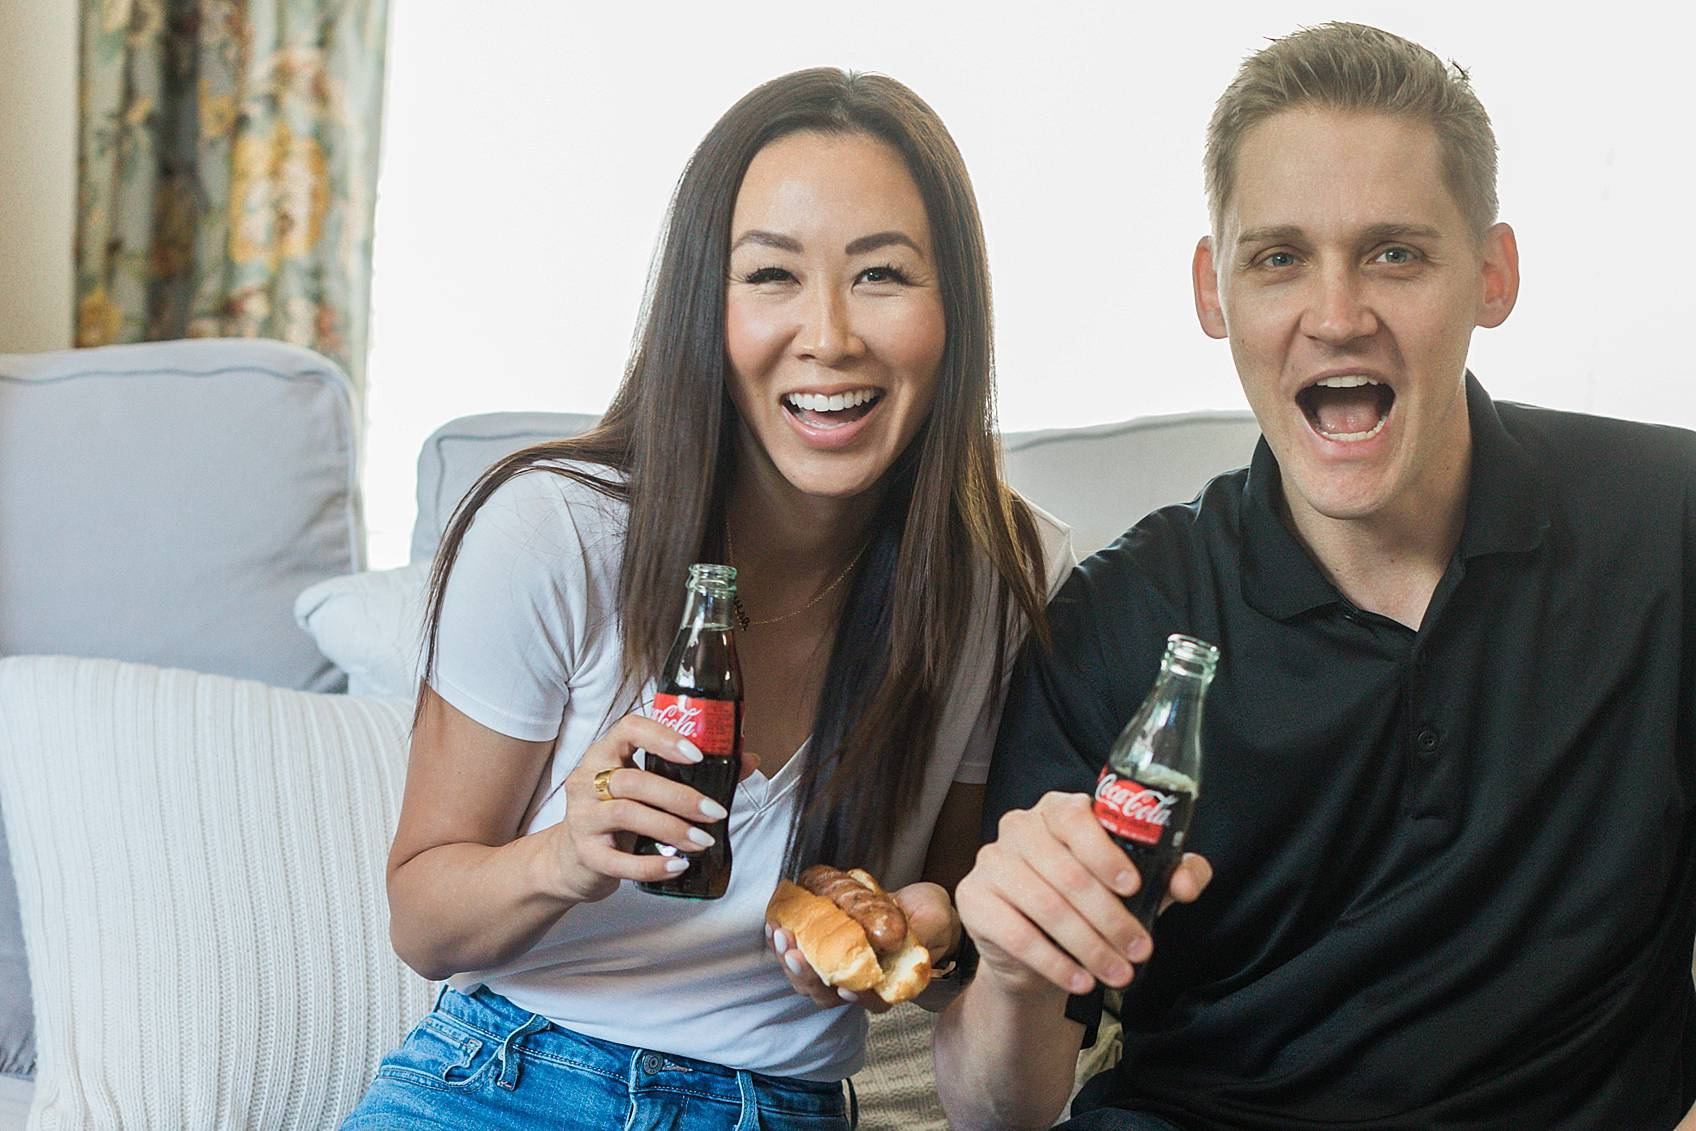 lifestyle blogger diana Elizabeth with husband on couch watching football - football party Coke Zero tailgating at home party setup ideas